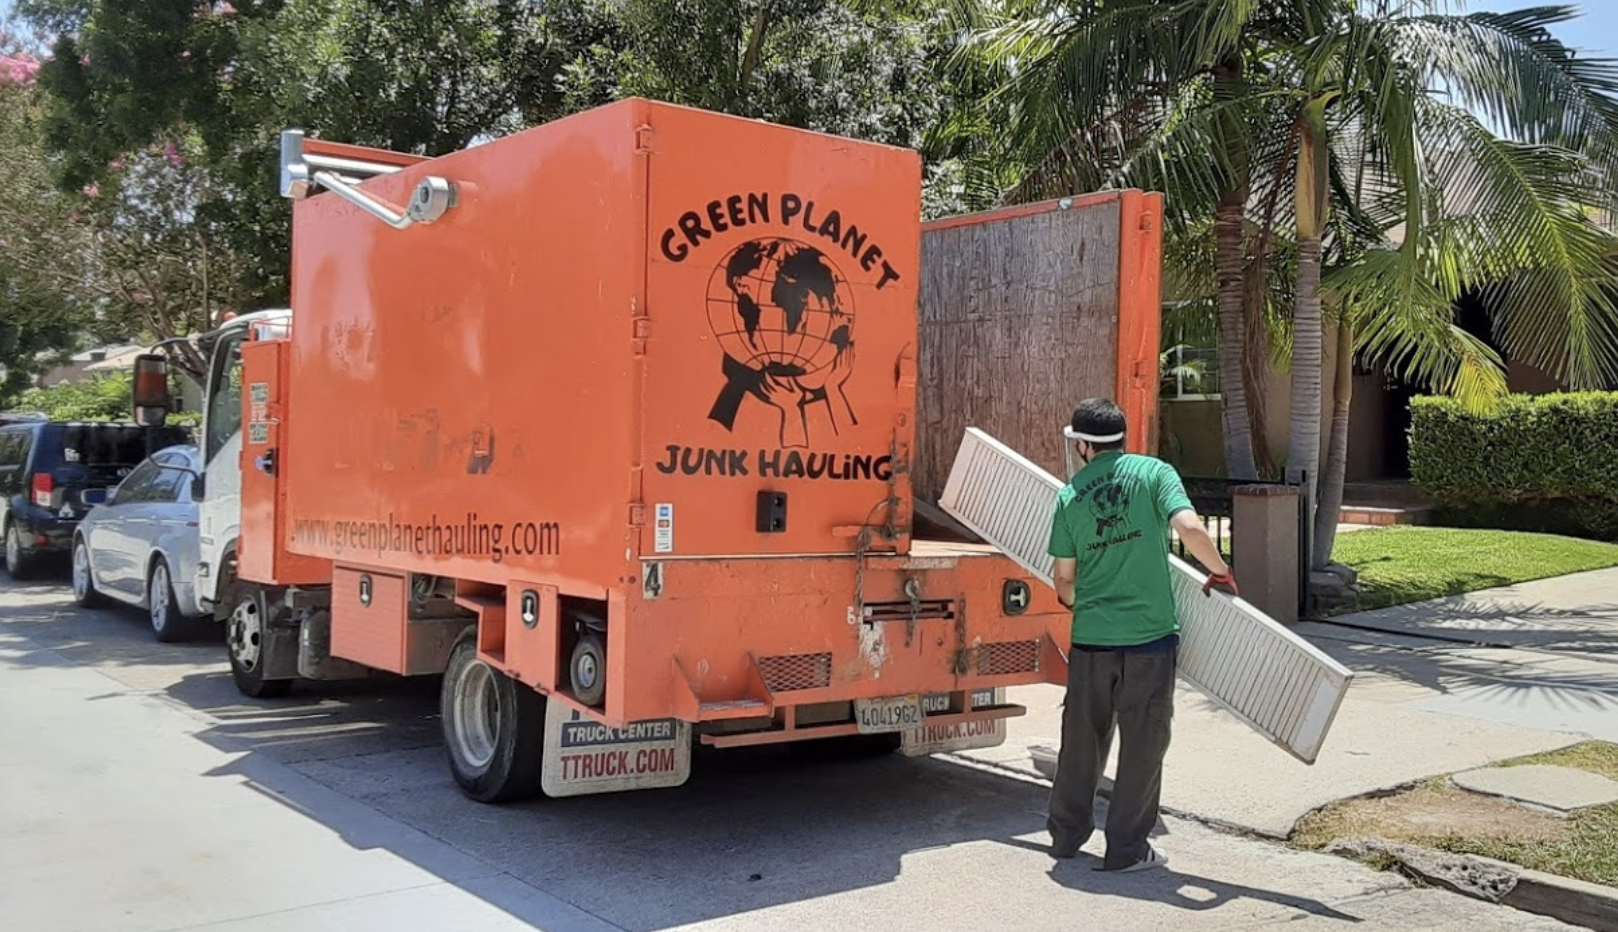 junk hauling junk removal orange county